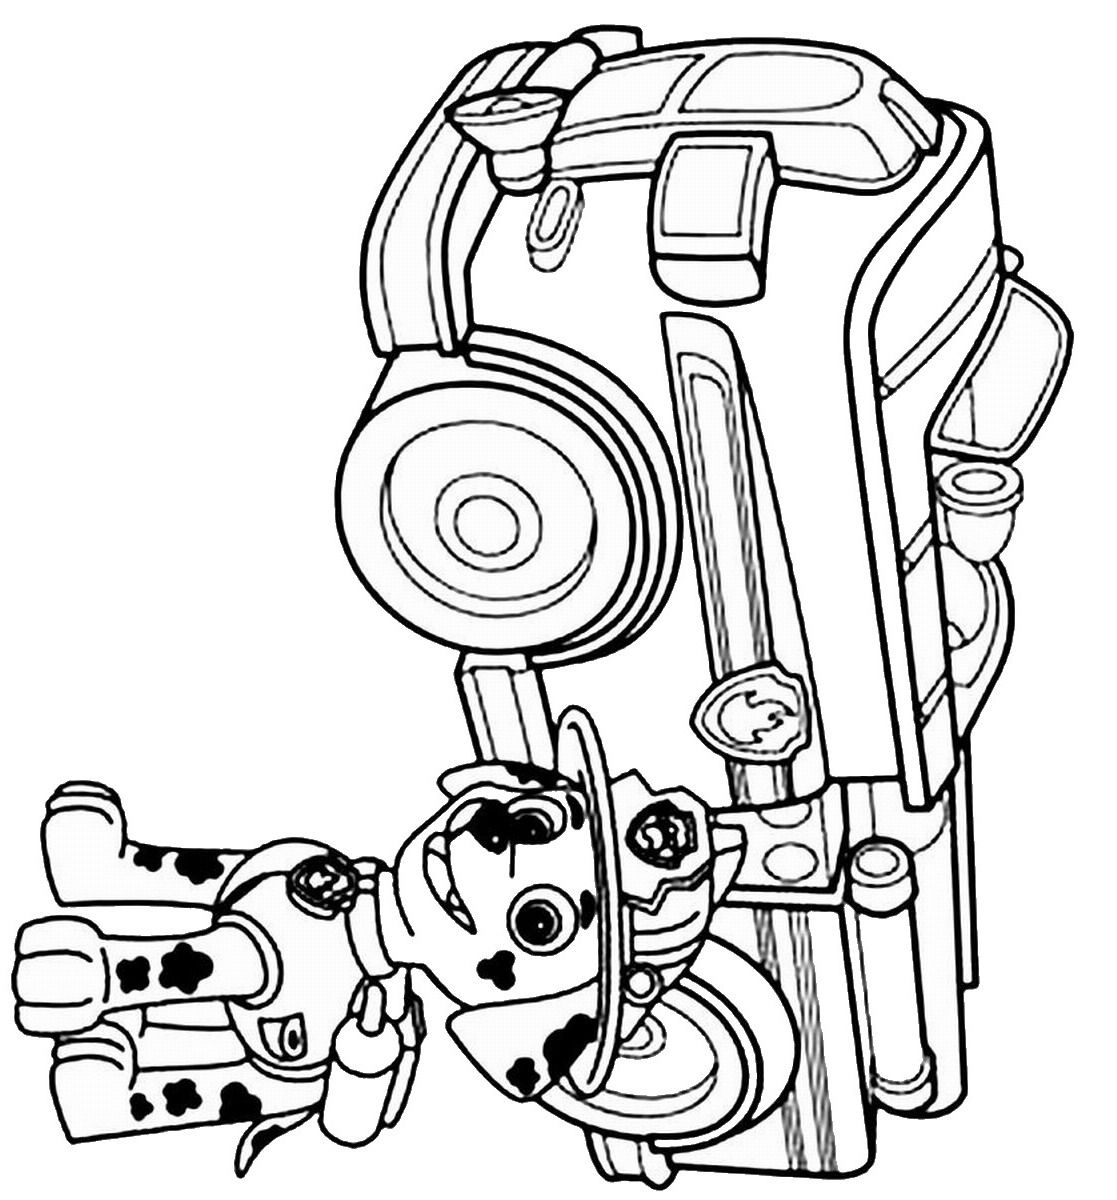 paw patrol coloring pages chase paw patrol coloring pages coloring home pages paw patrol coloring